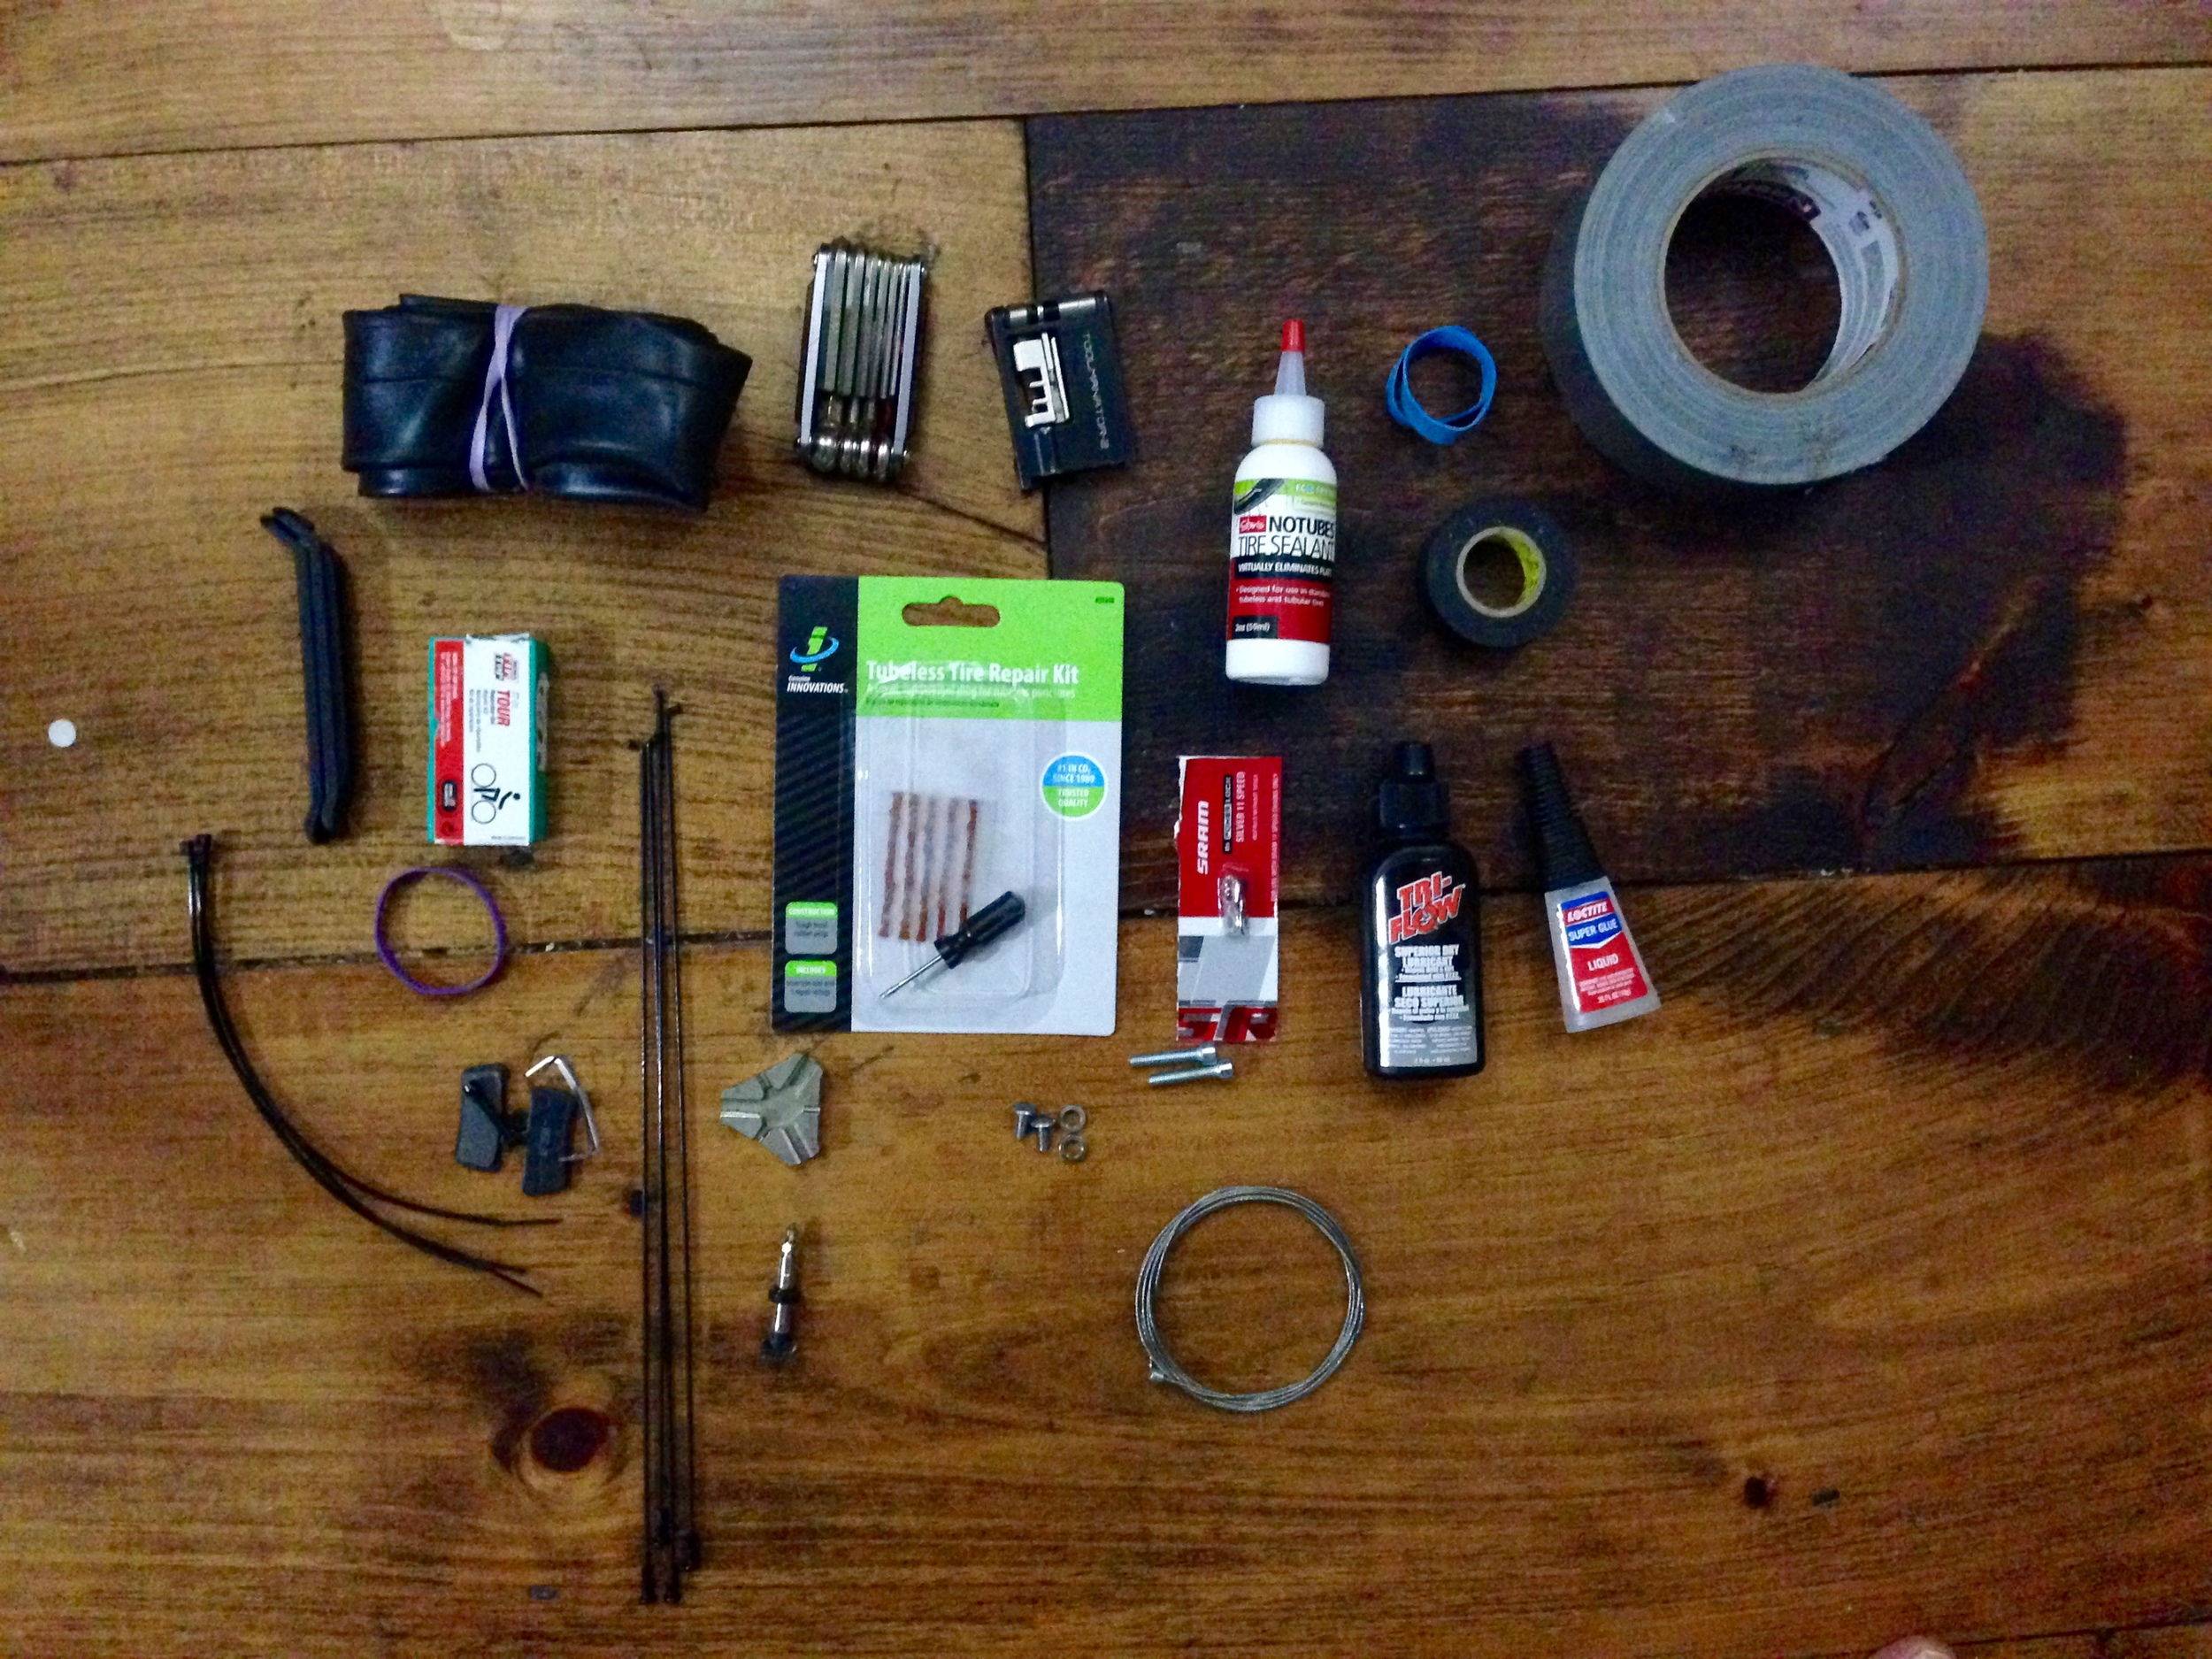 Bike repair knoll: bike tube, multi tool, chain break that someone almost broke,#stans, rubber bands, electrical and duct tape (yes I wrapped around my handlebars) tire lever (but I won't use them promise@tophervalenti) patch kit, 3 x extra spokes, tubeless patch kit, master link for@srammtb1 x 11 😍, chain lube, super glue, brake pads, zip ties, spoke wrench, extra valve/core, nuts, dérailleur cable.